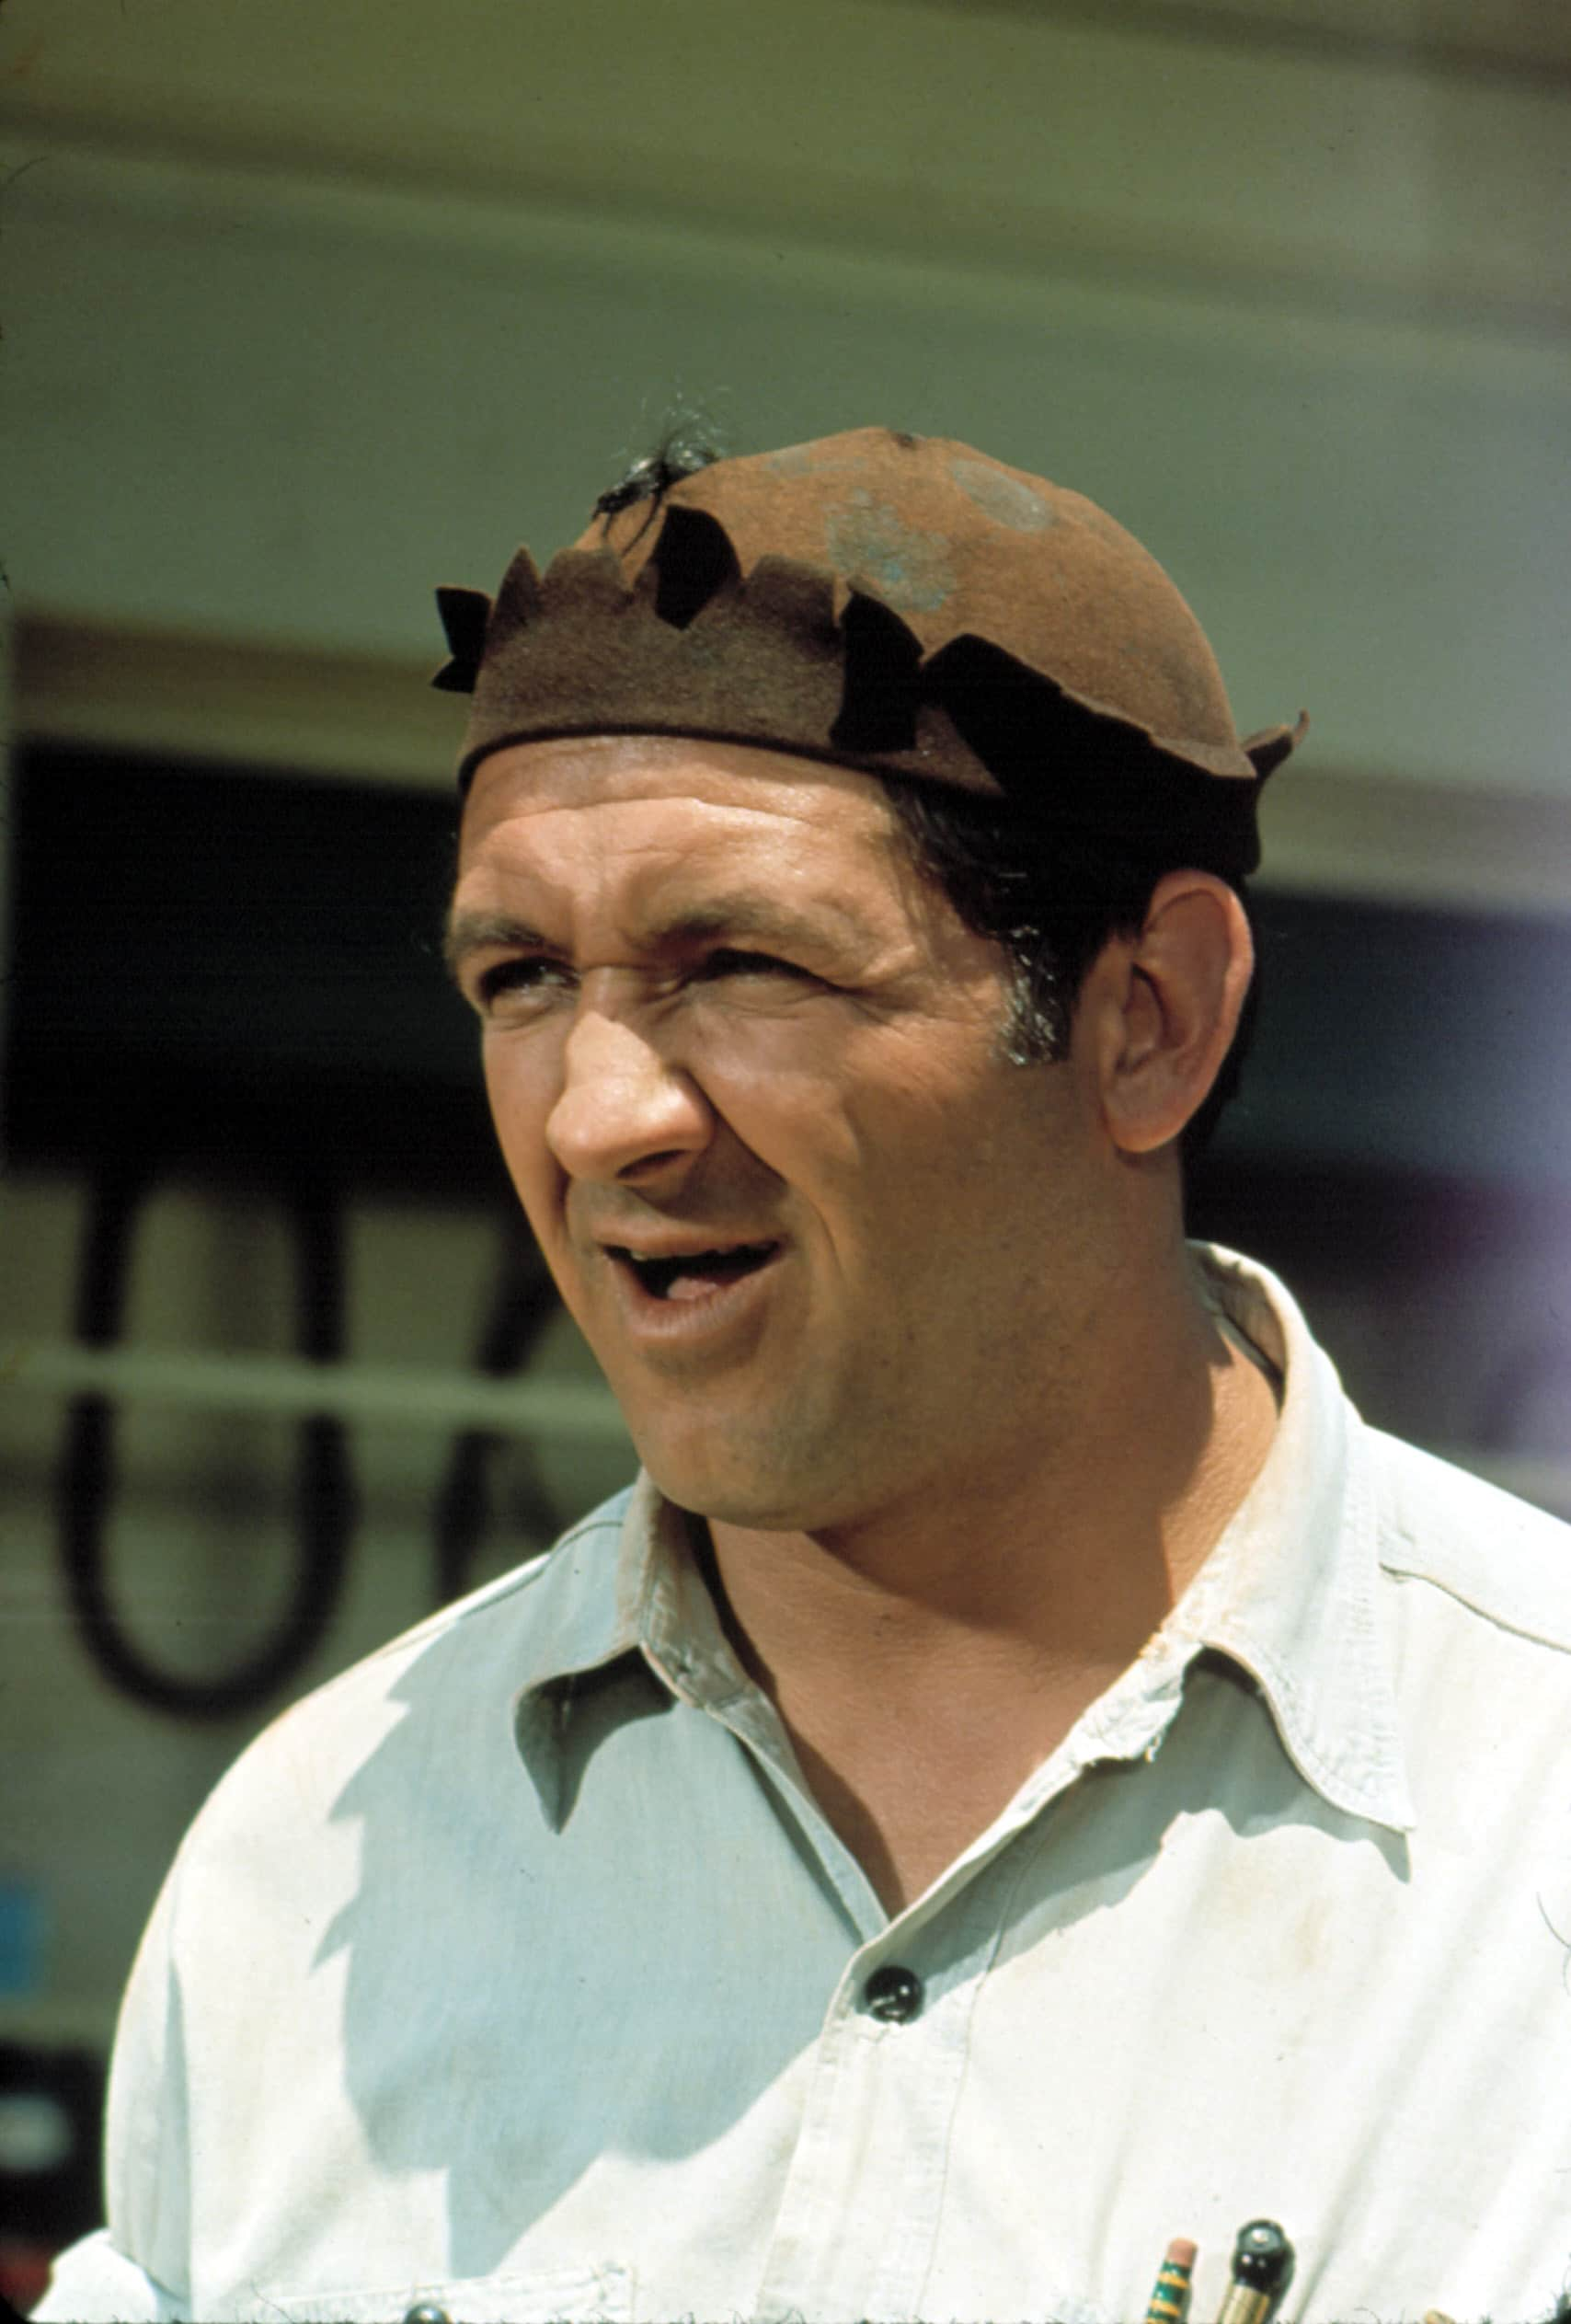 ANDY GRIFFITH SHOW, George Lindsey as Goober, Season 5, 1964-1965